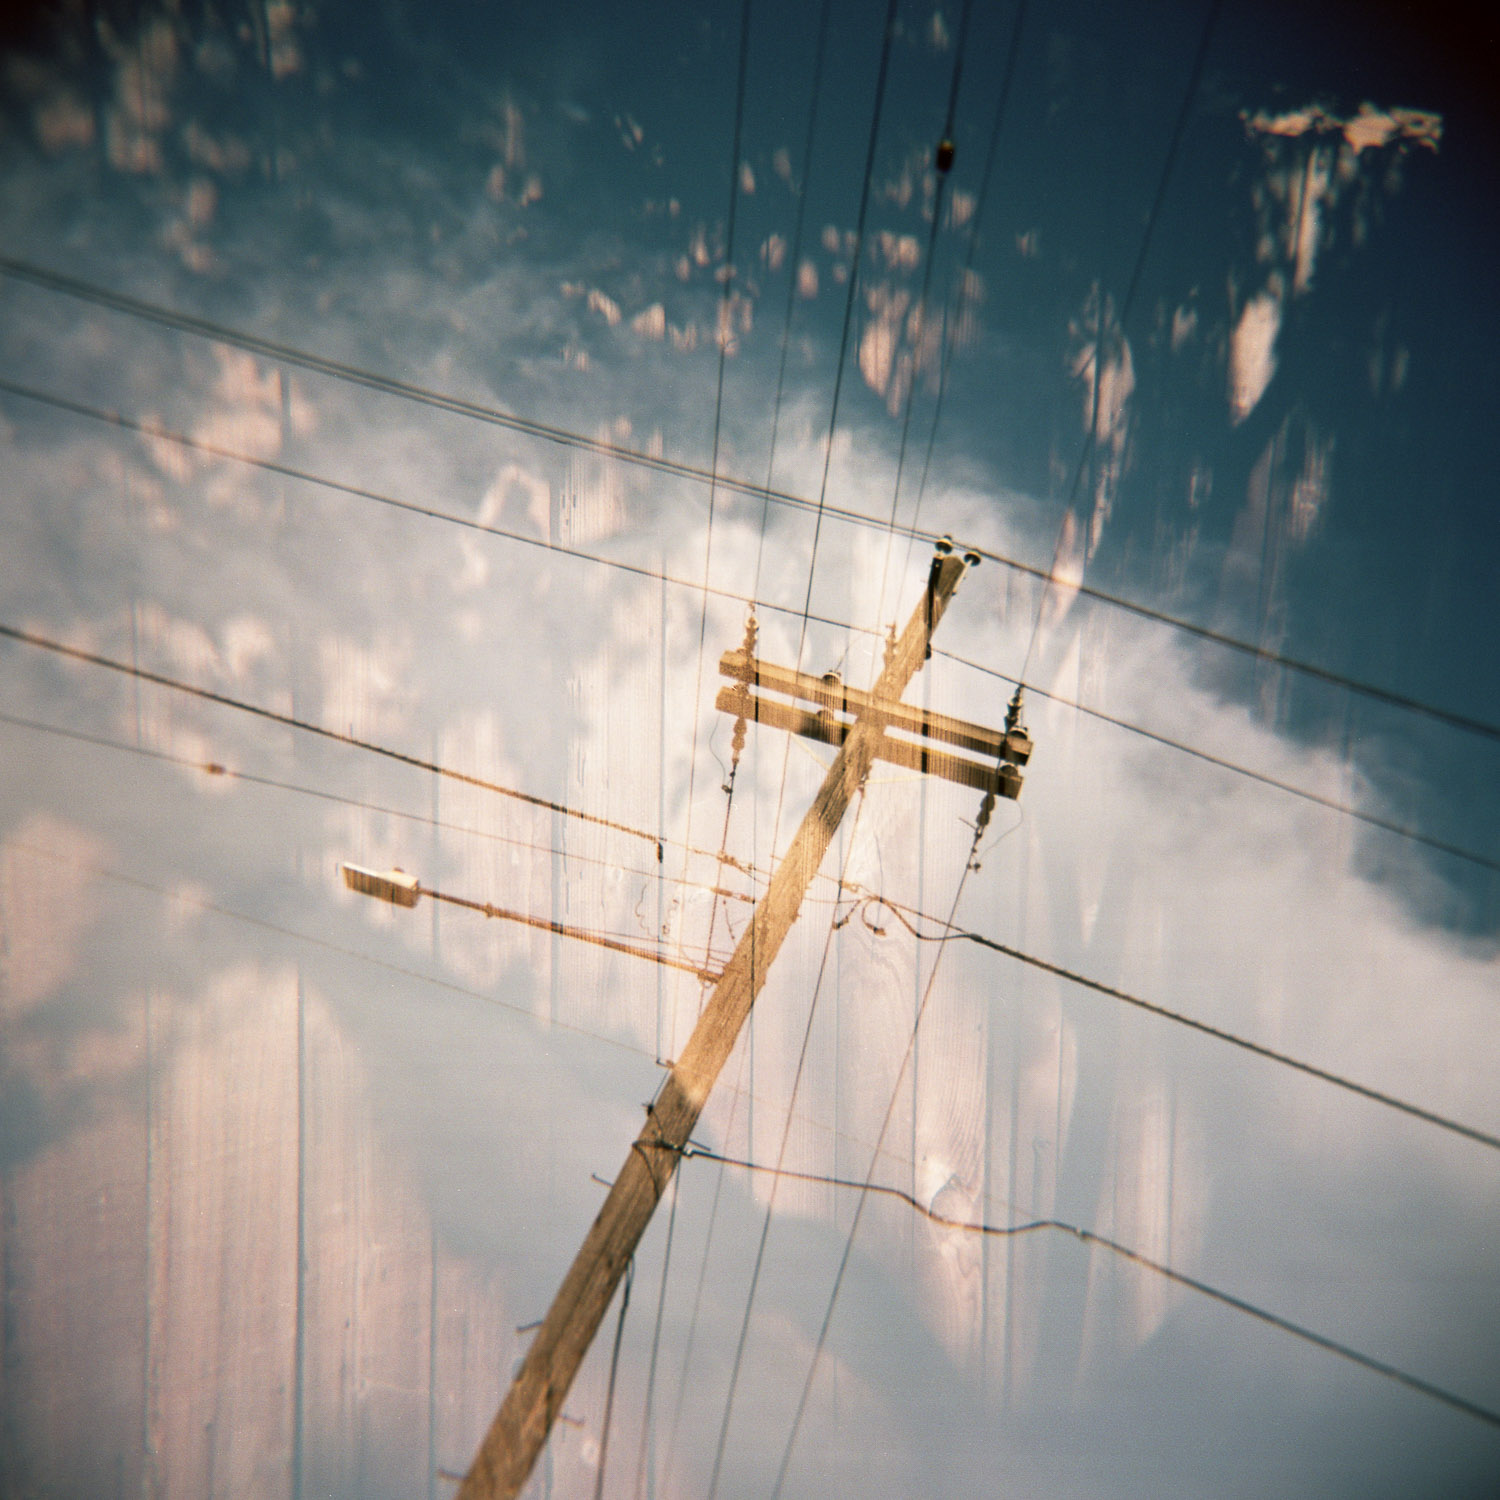 Double exposure Holga photo of power lines and a fence